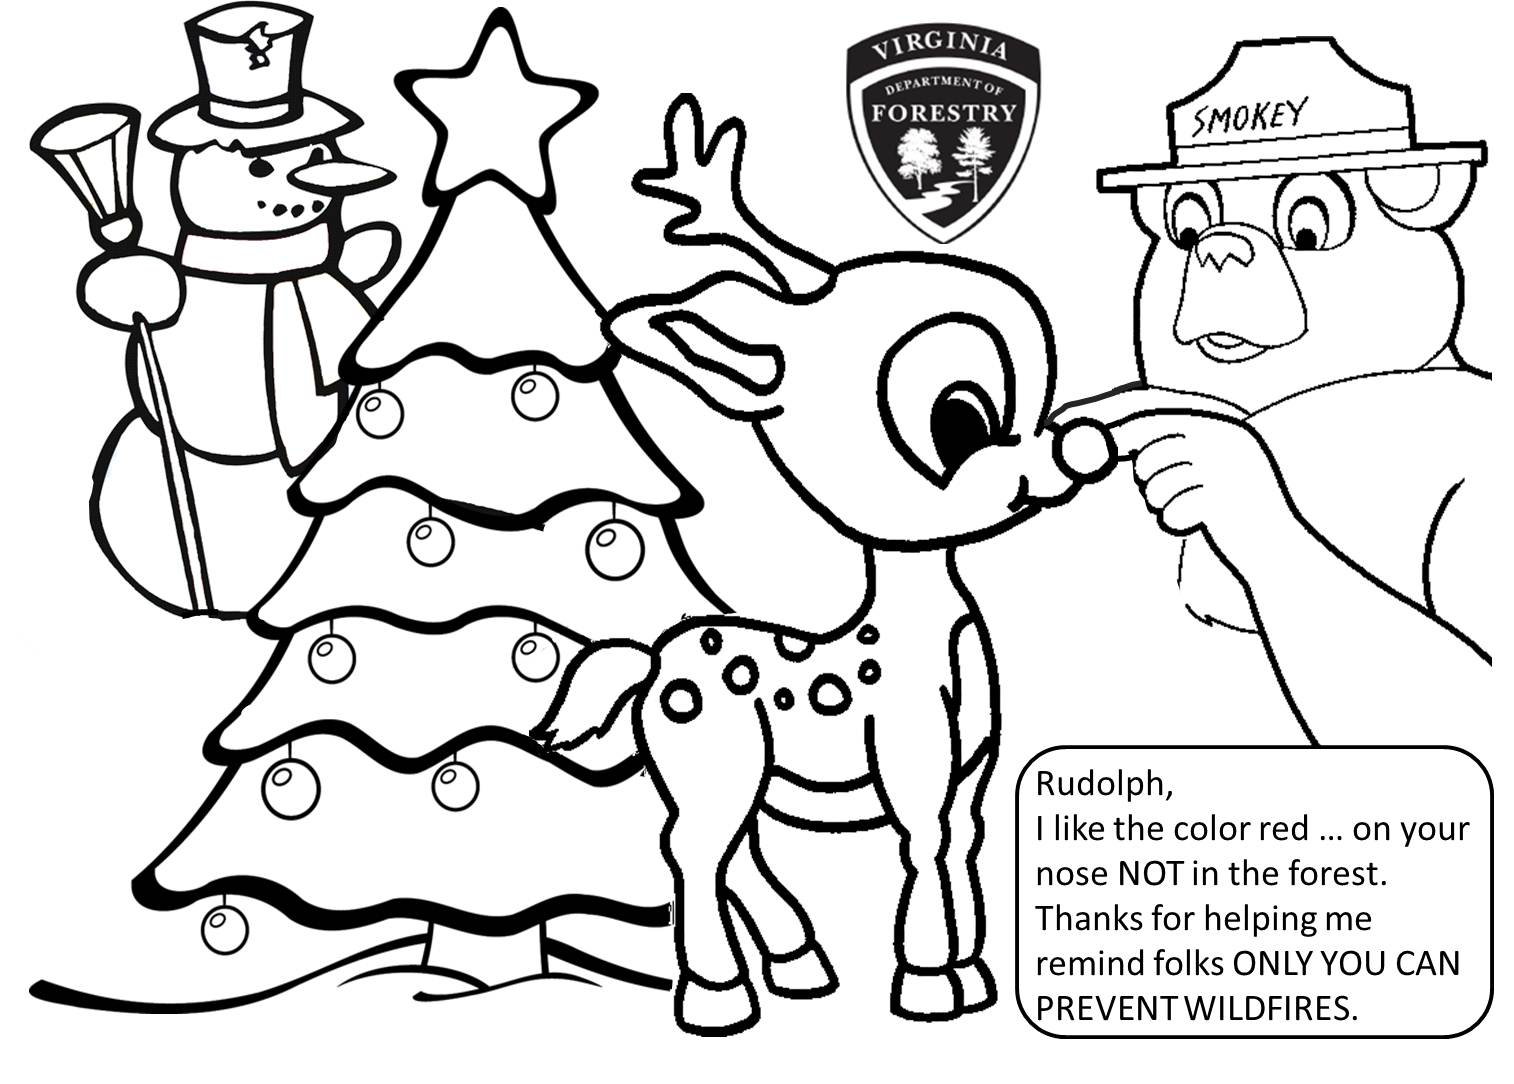 Rudolph Coloring Pages (16 Pictures) - Colorine.net | 22631